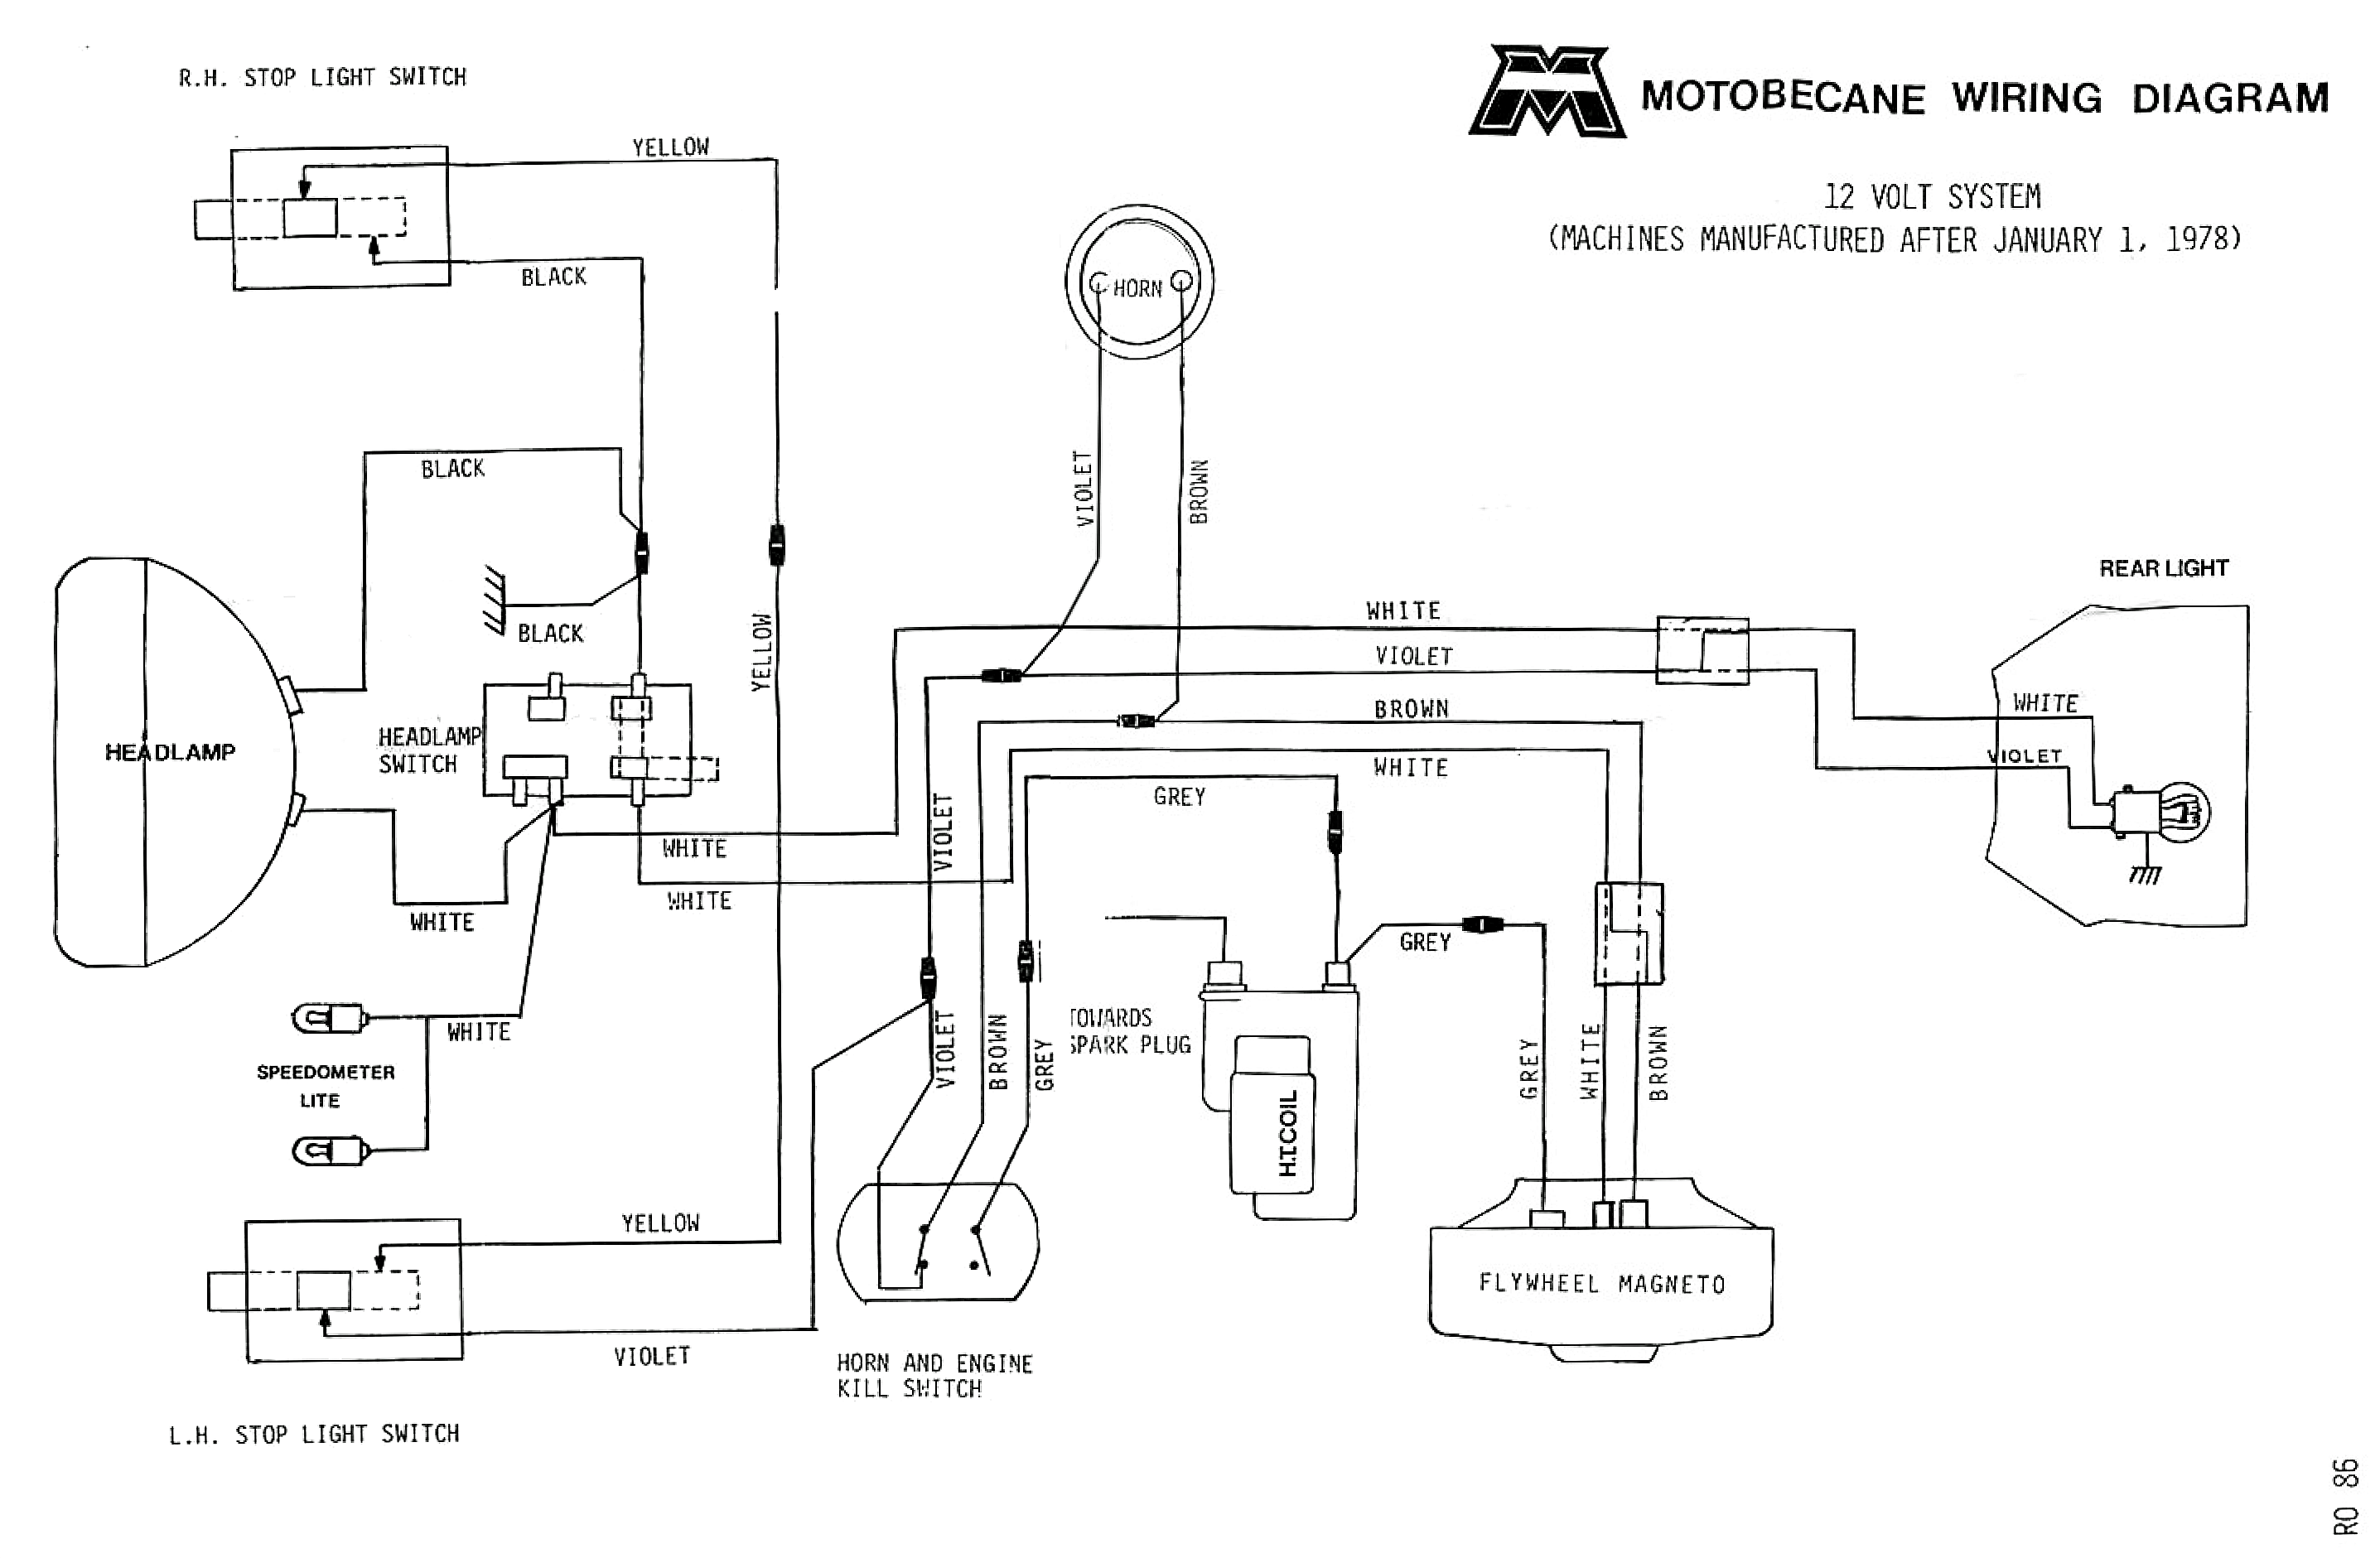 kromag moped wiring diagram puch moped wiring diagram